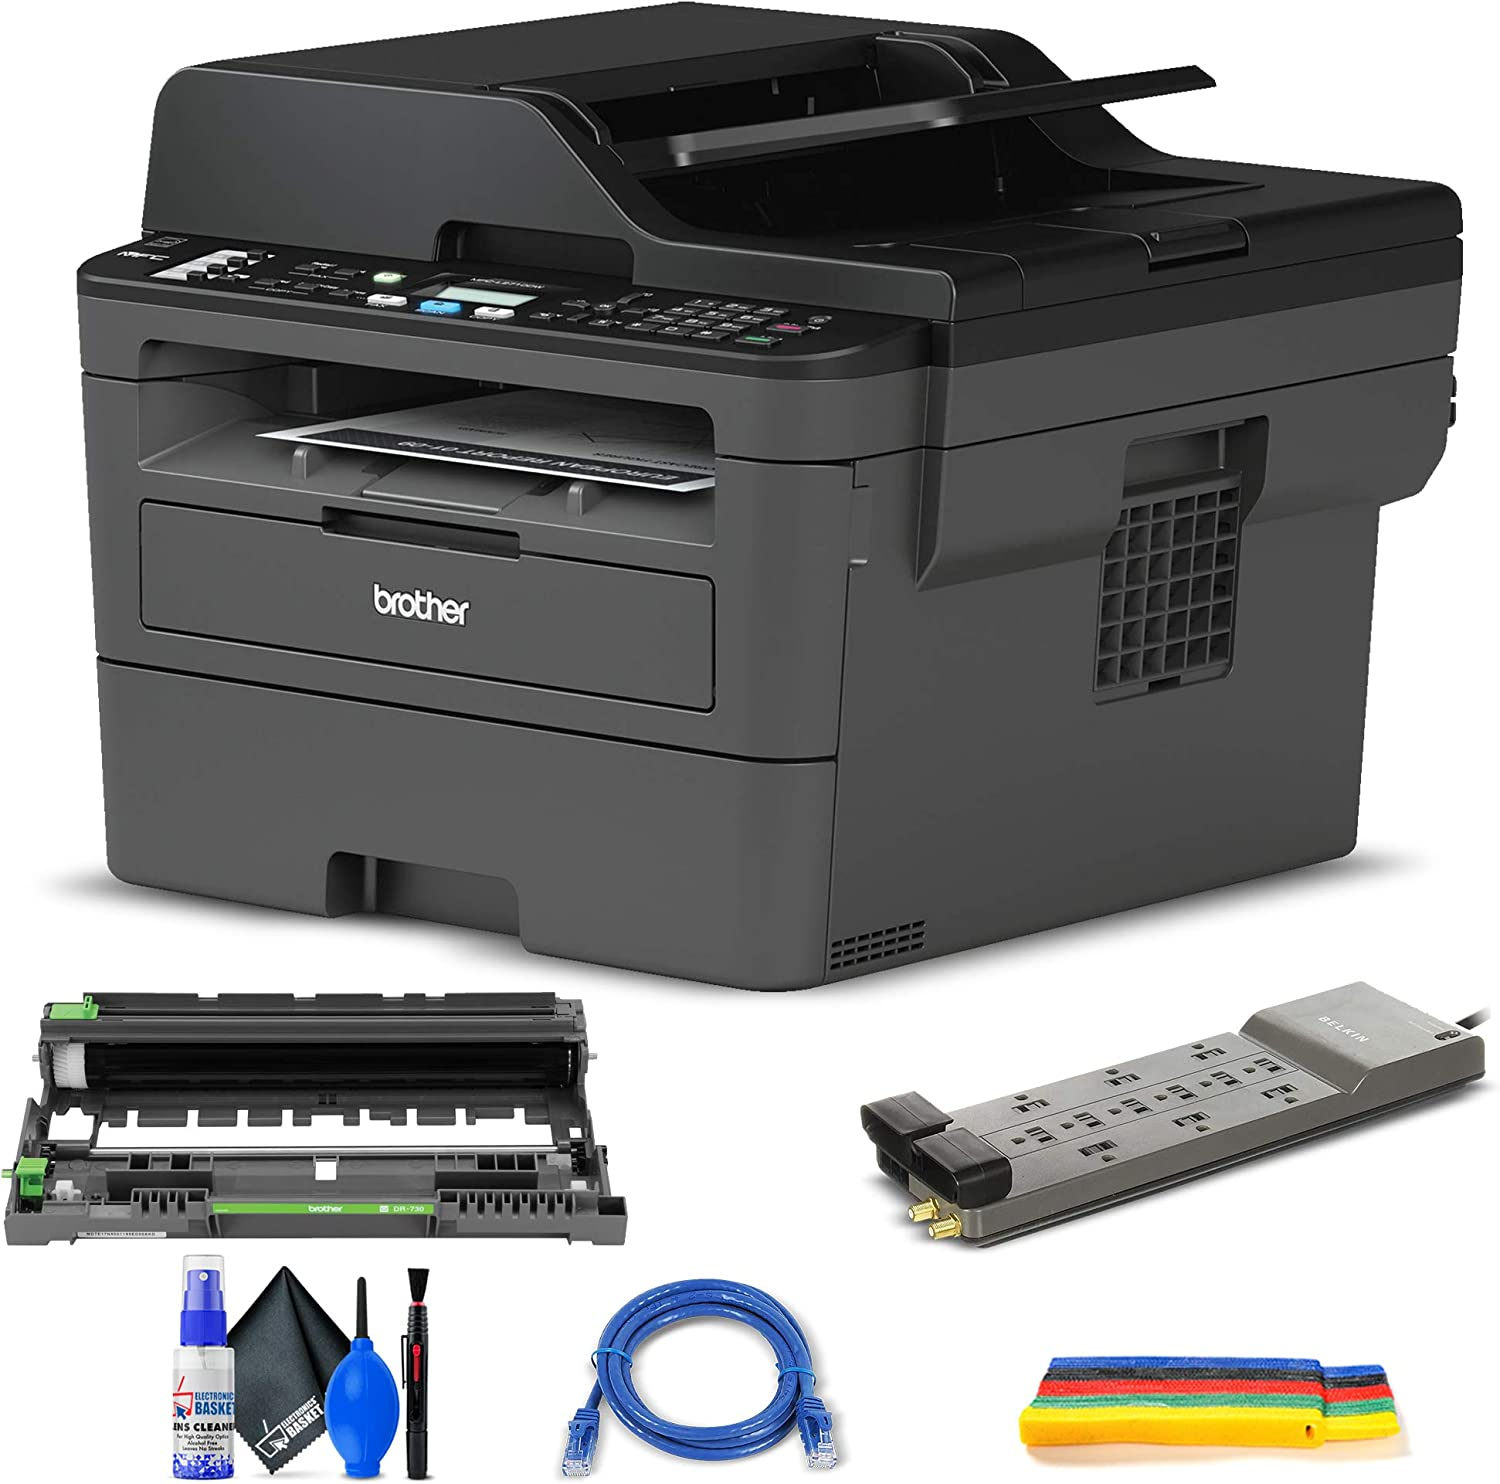 Brother MFC-L2710DW All-in-One Monochrome Laser Printer (MFC-L2710DW) + Surge Protector + Network Cable + Deluxe Cleaning Kit + Tie Straps